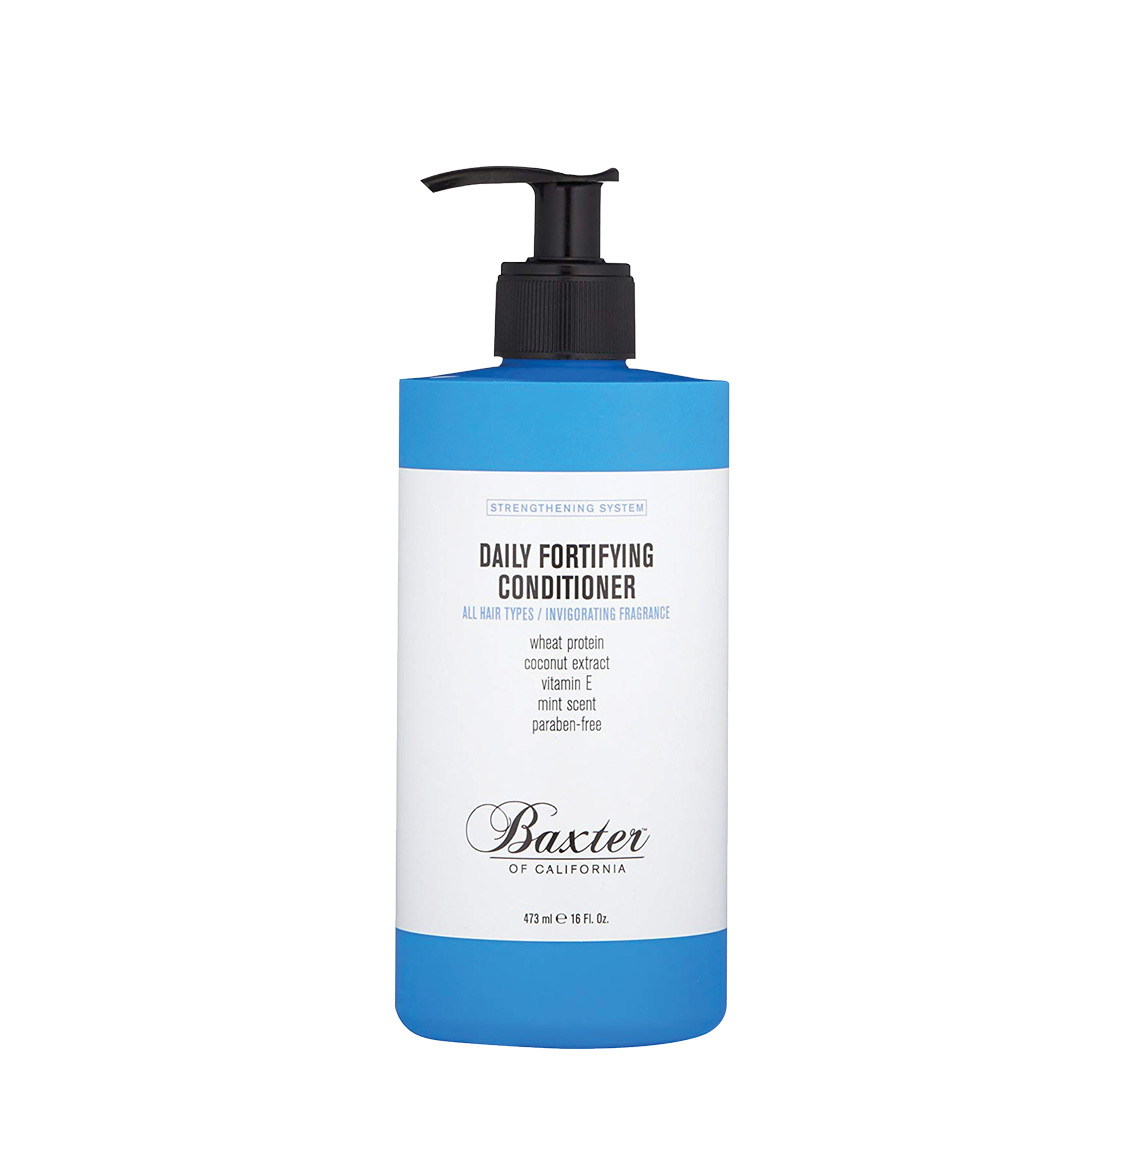 Baxter of California Daily Fortifying Conditioner 473ml